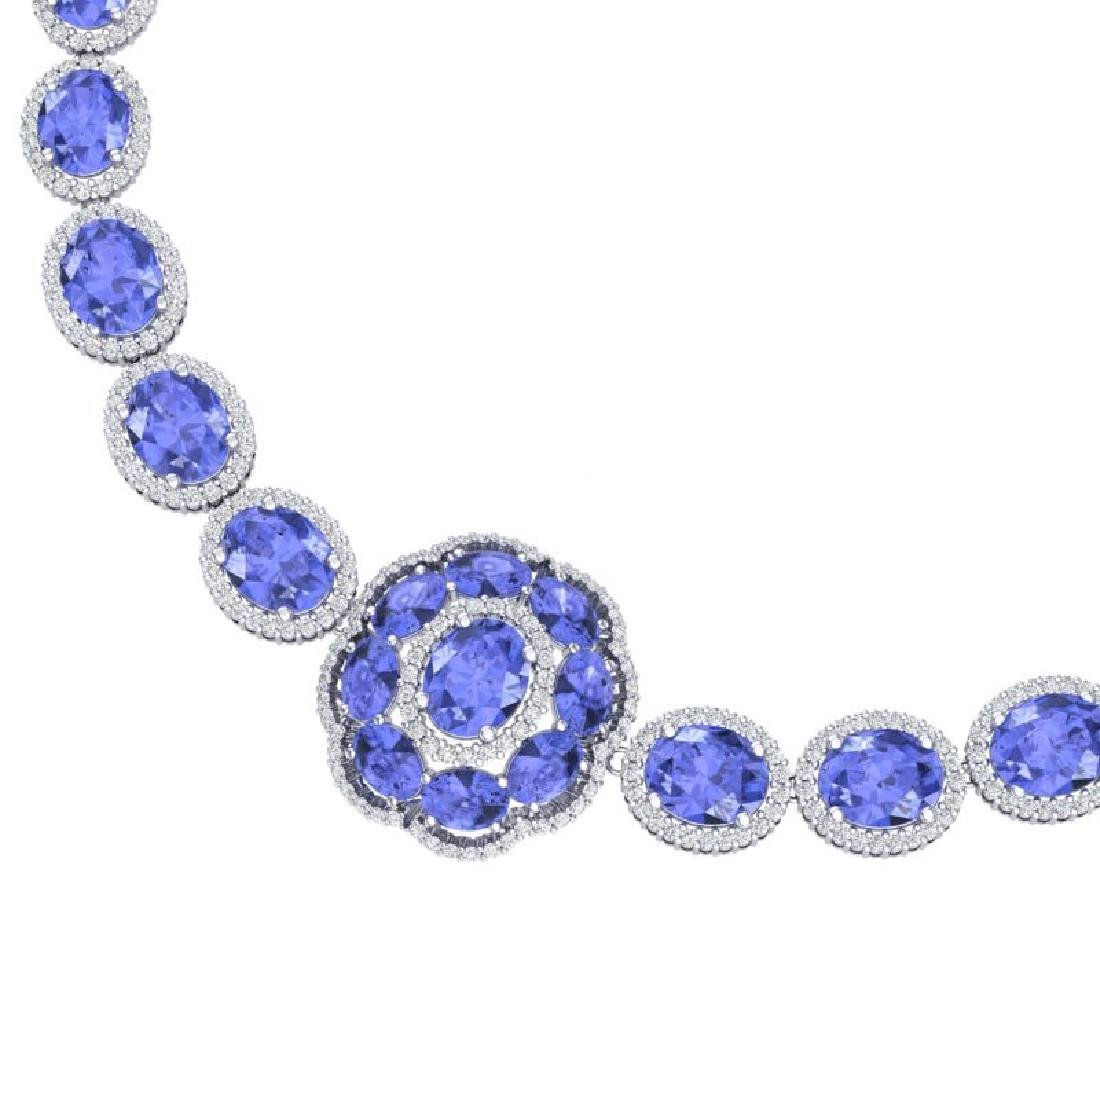 55.84 CTW Royalty Tanzanite & VS Diamond Necklace 18K